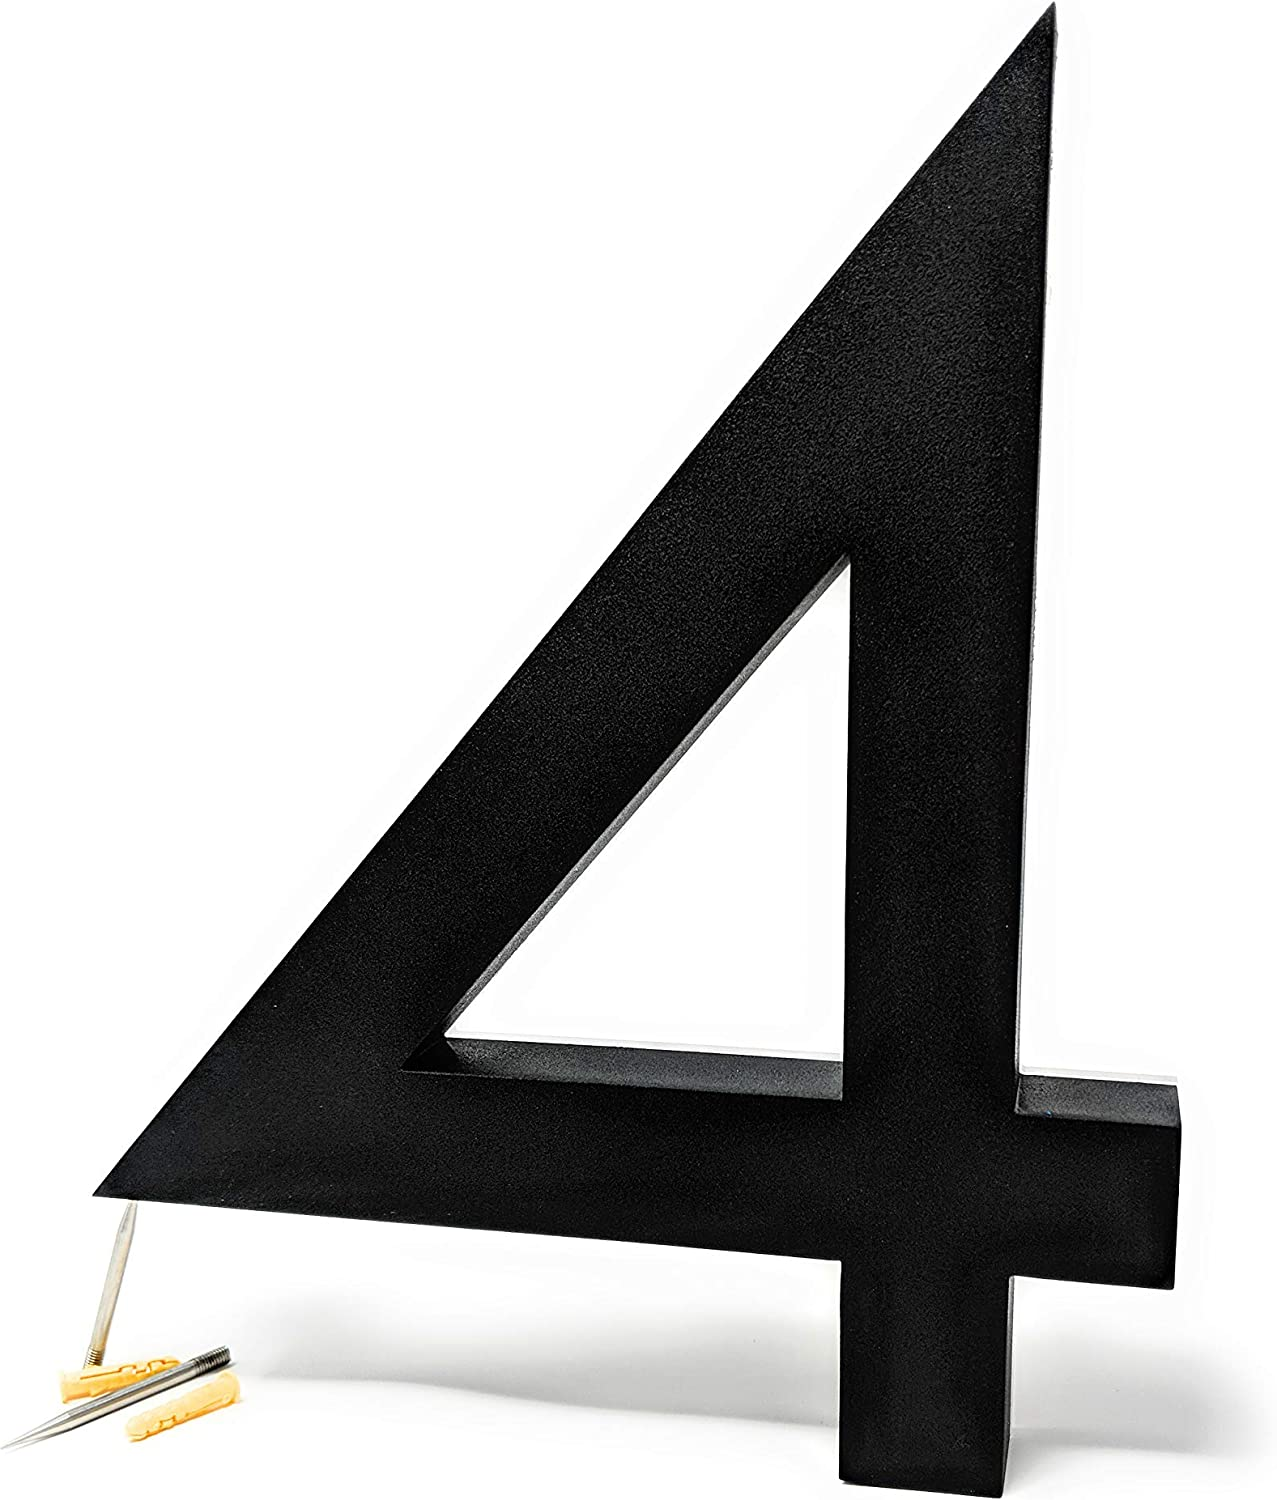 12 Inch Backlit LED House Numbers | Big, Modern Lights Address Signs for Homes | Soft, Exterior Glow | Stainless-Steel Black Finish | Weather Resistant, Durable | by JELSCO (4, Neutra Black)